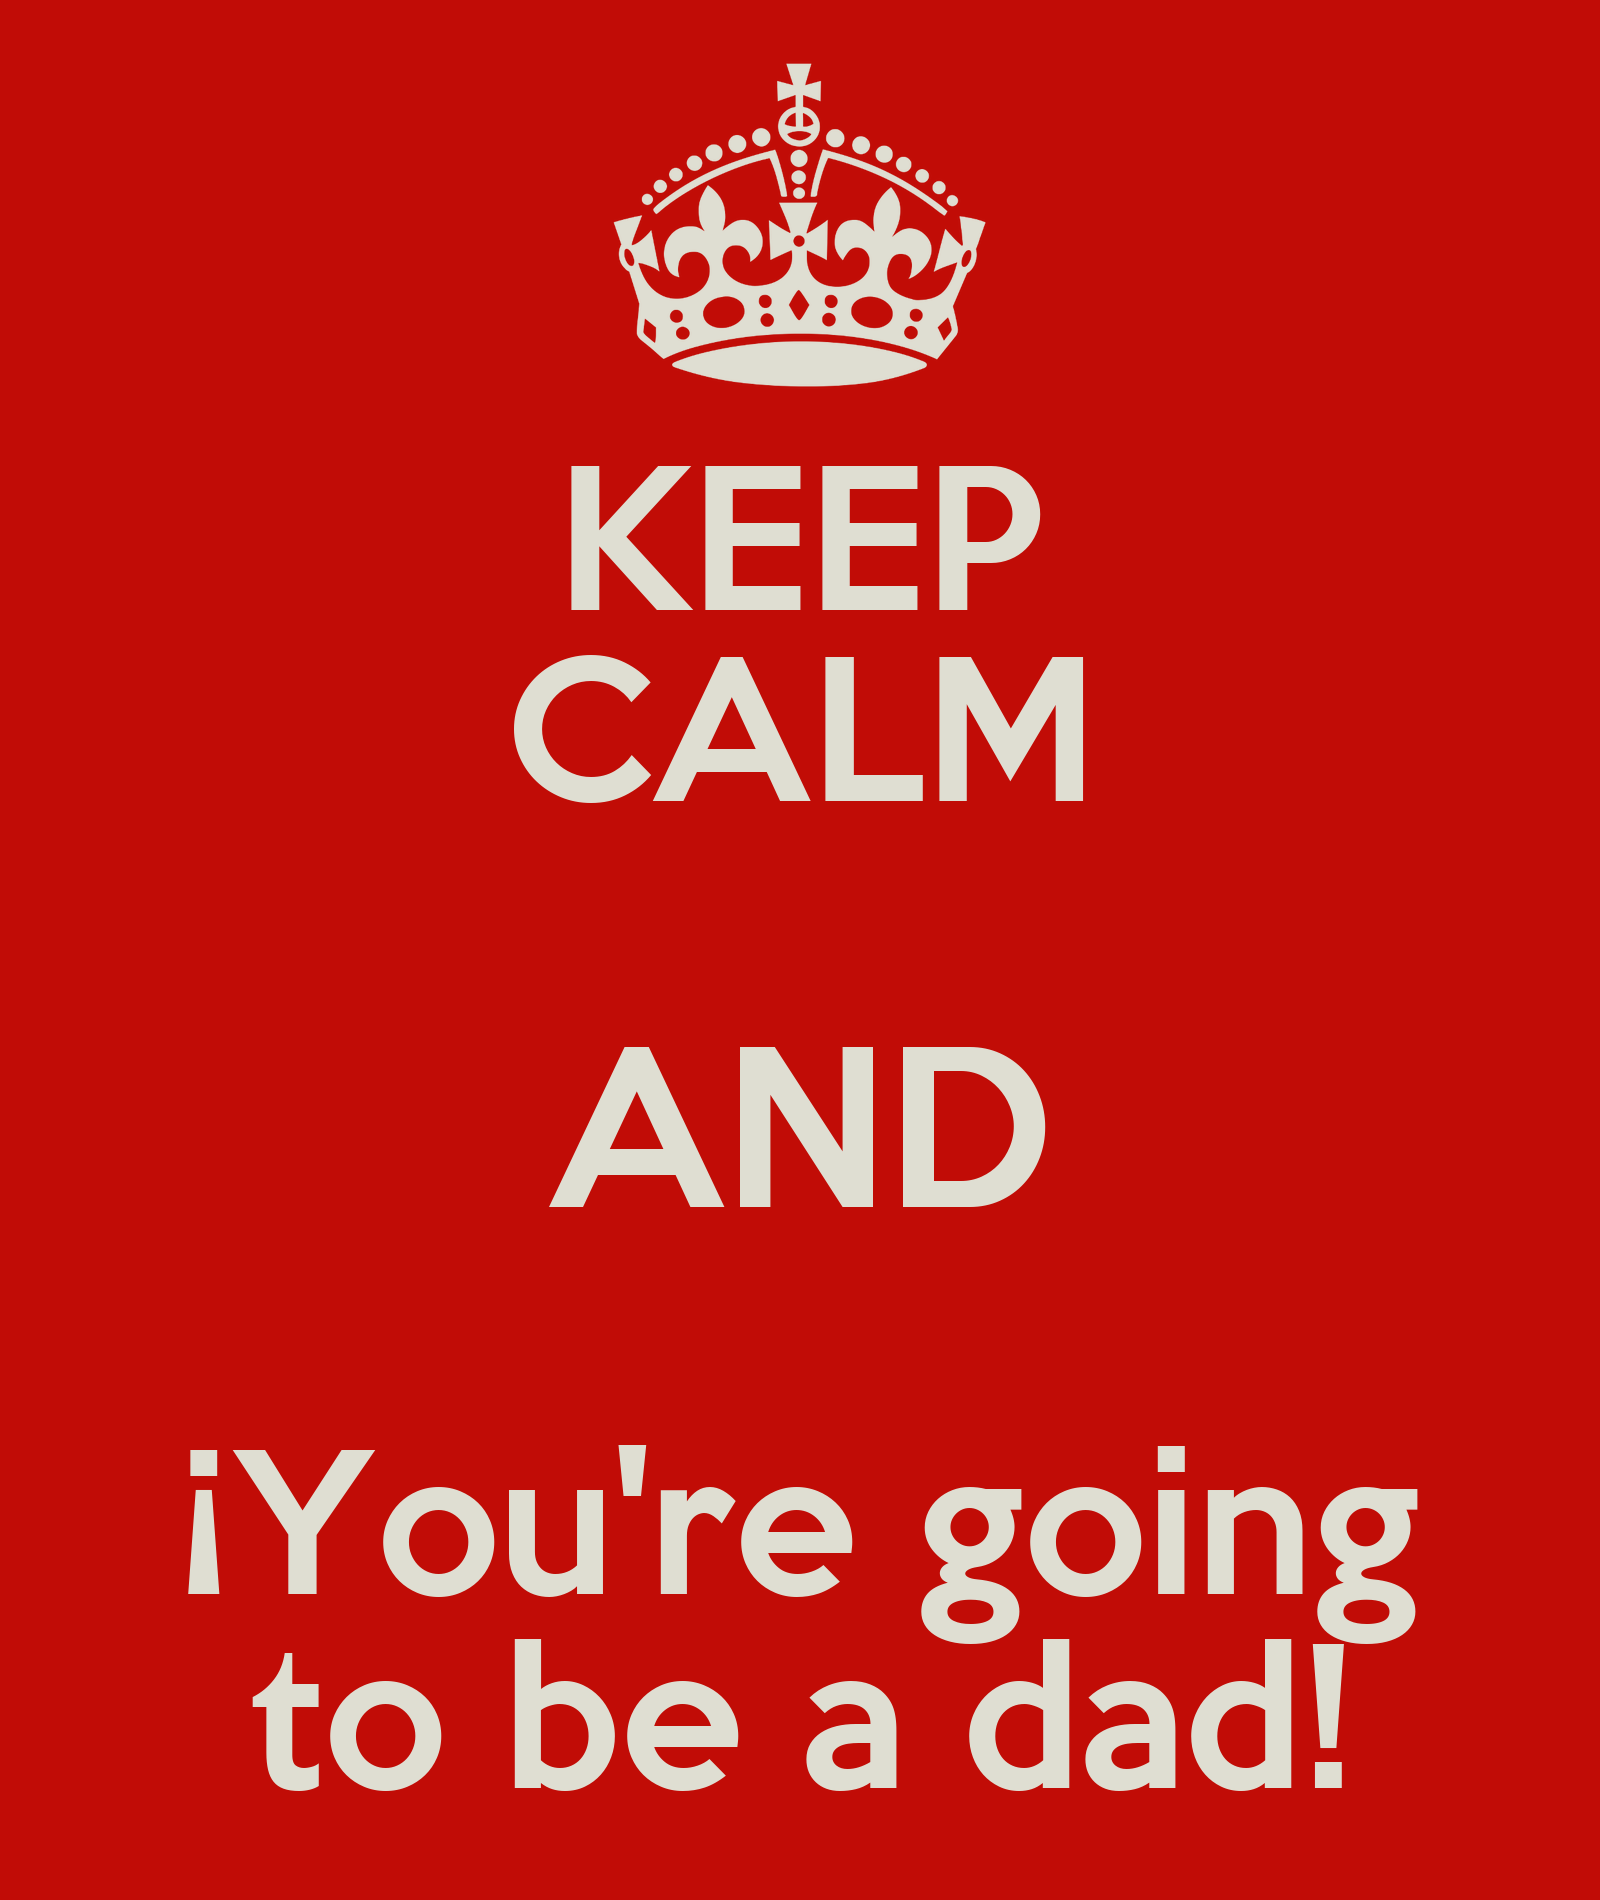 Keep Calm And You Re Going To Be A Dad Poster